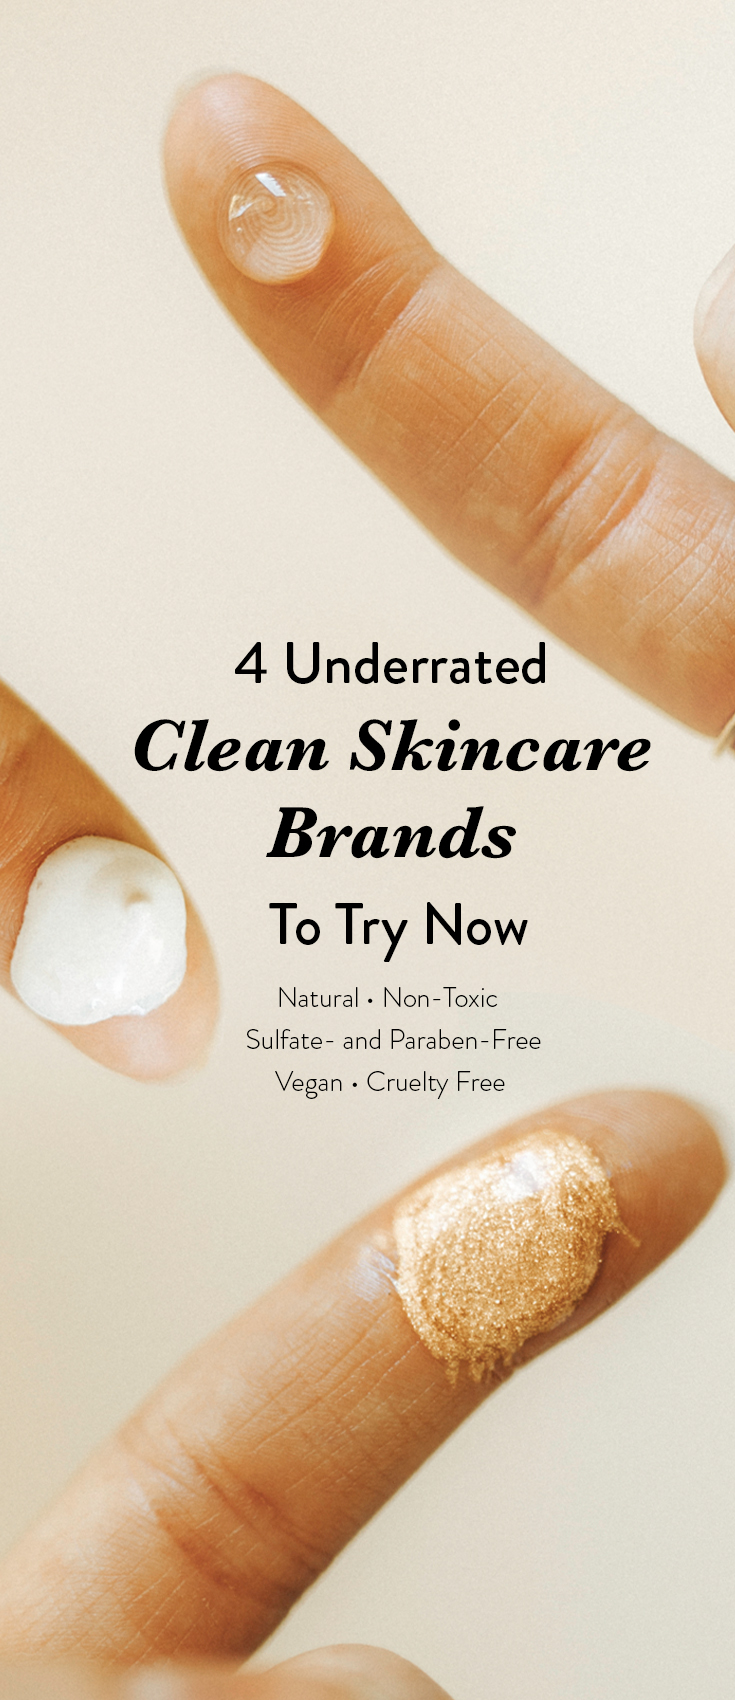 Clean Skincare Brands to Try